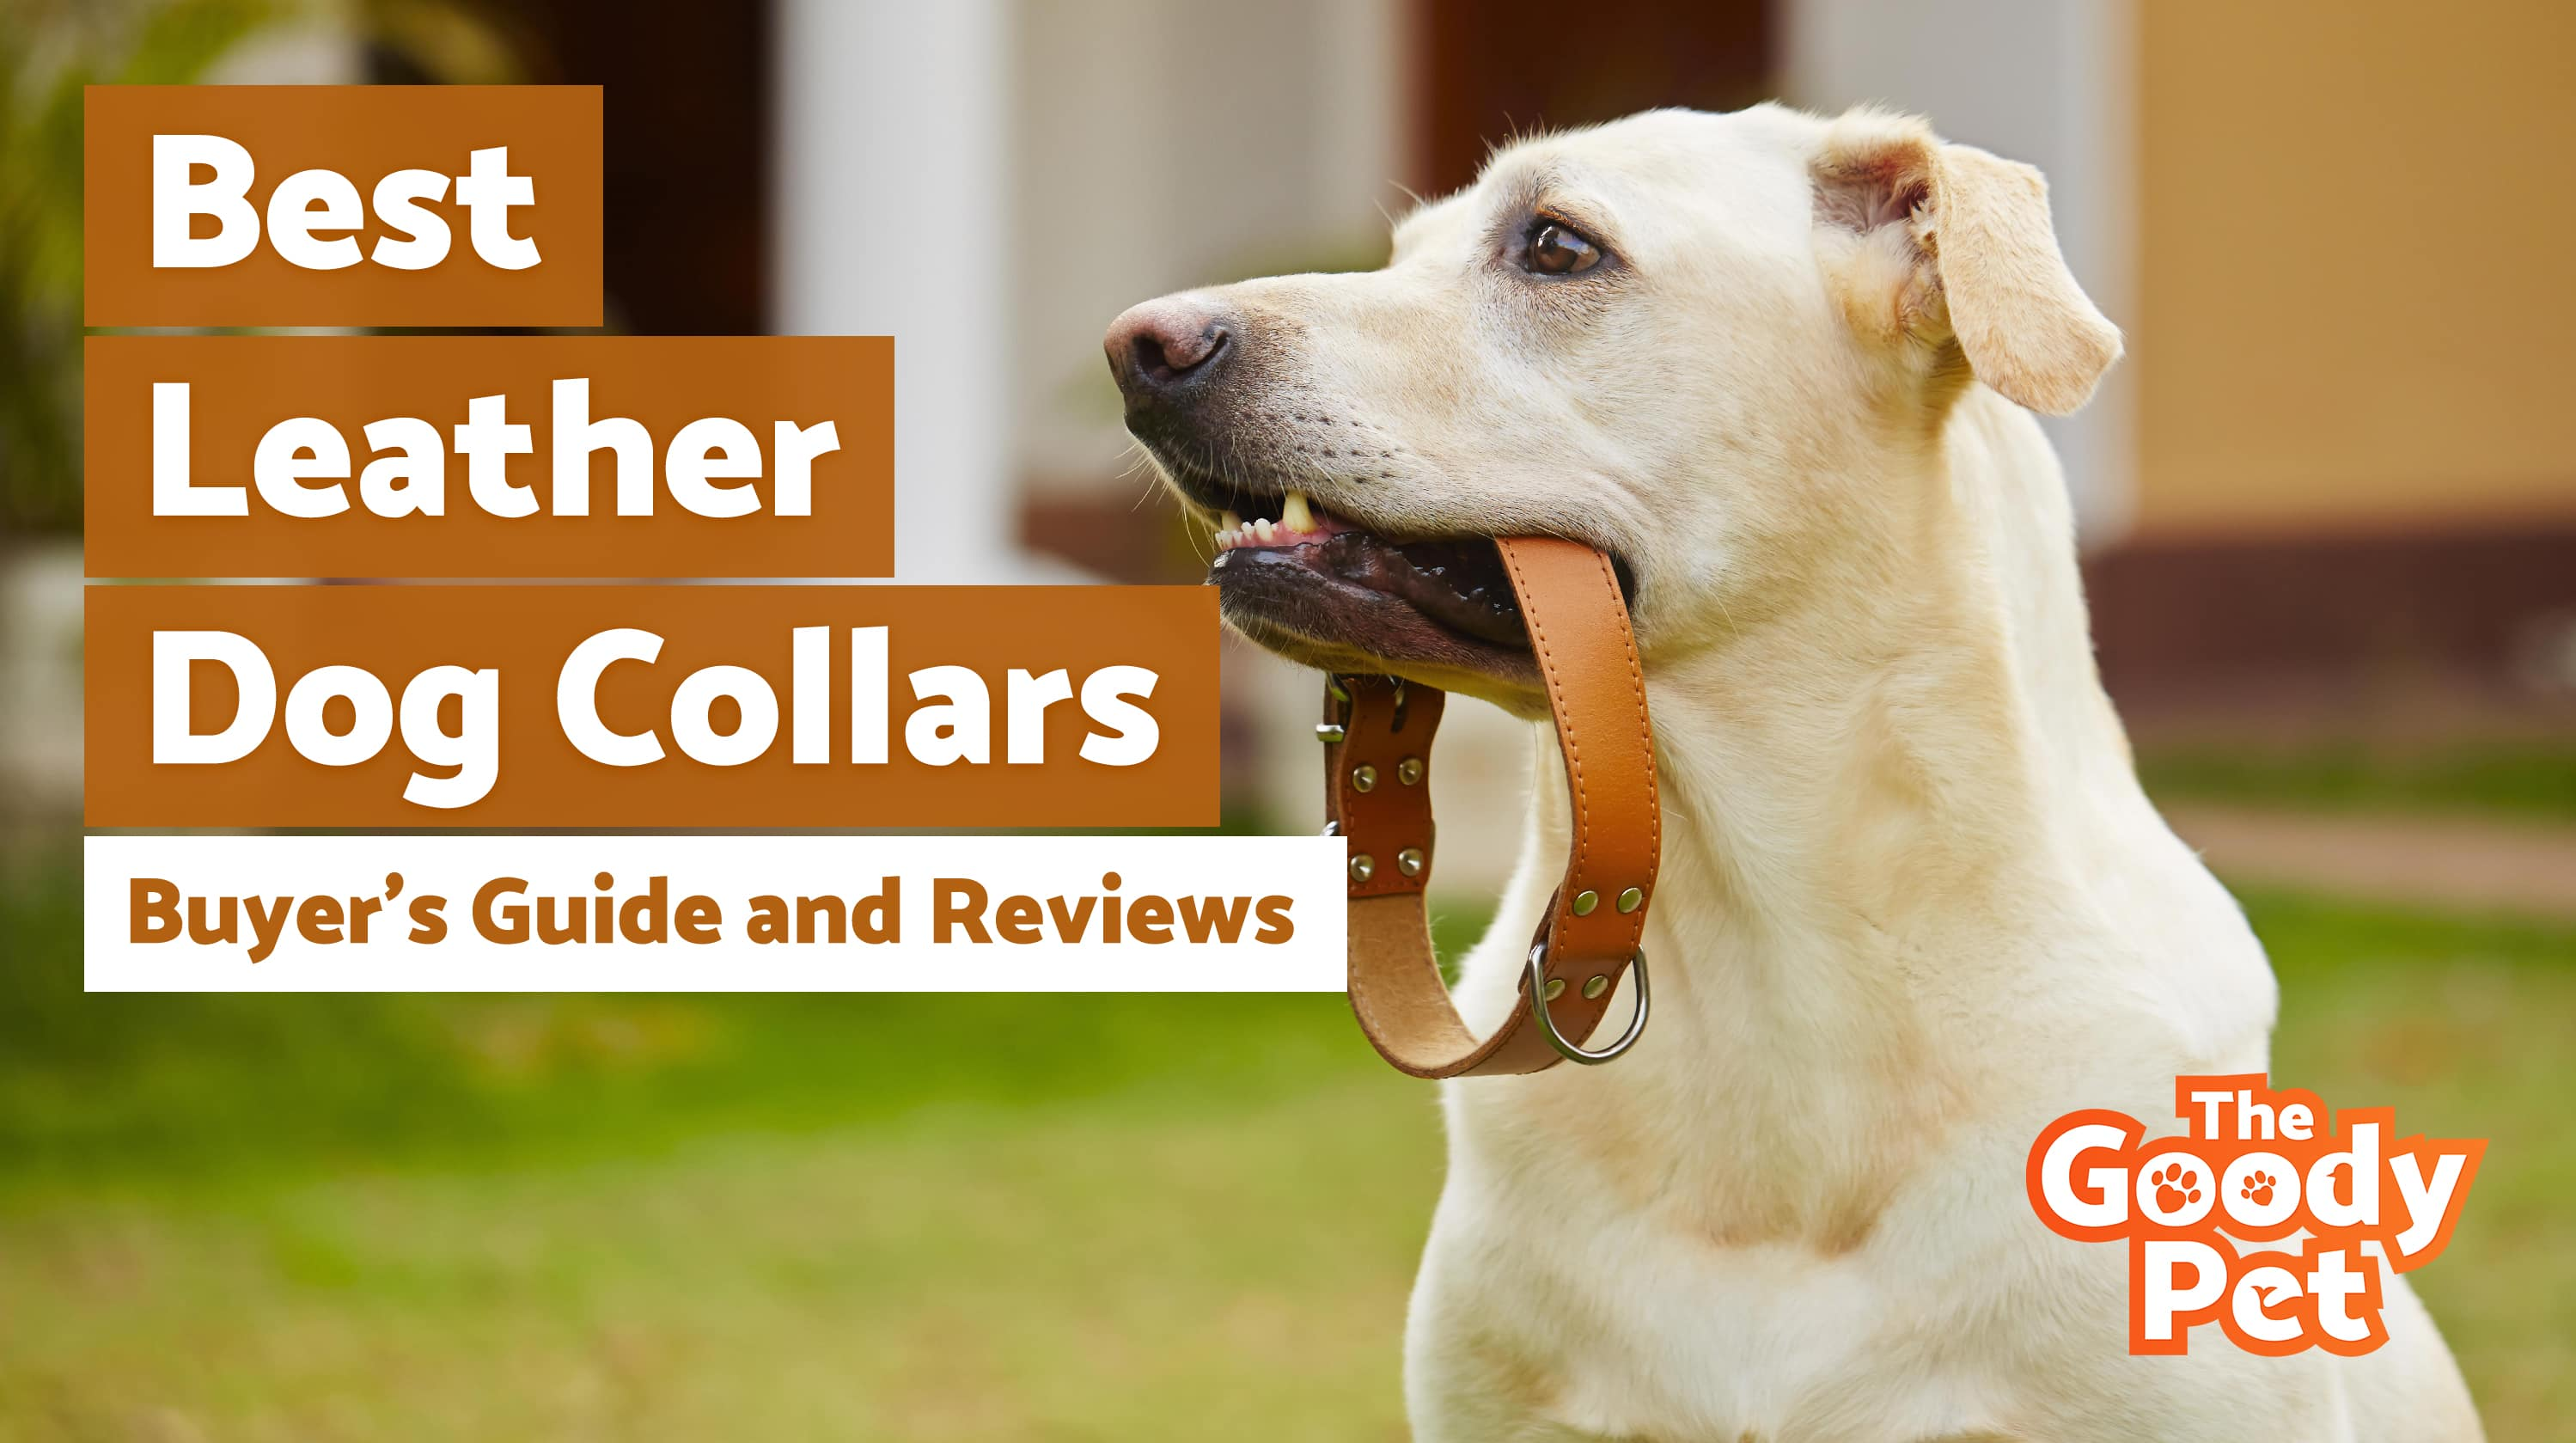 Best Leather Dog Collars For Your Pooch – Our 2019 Reviews & Top Picks